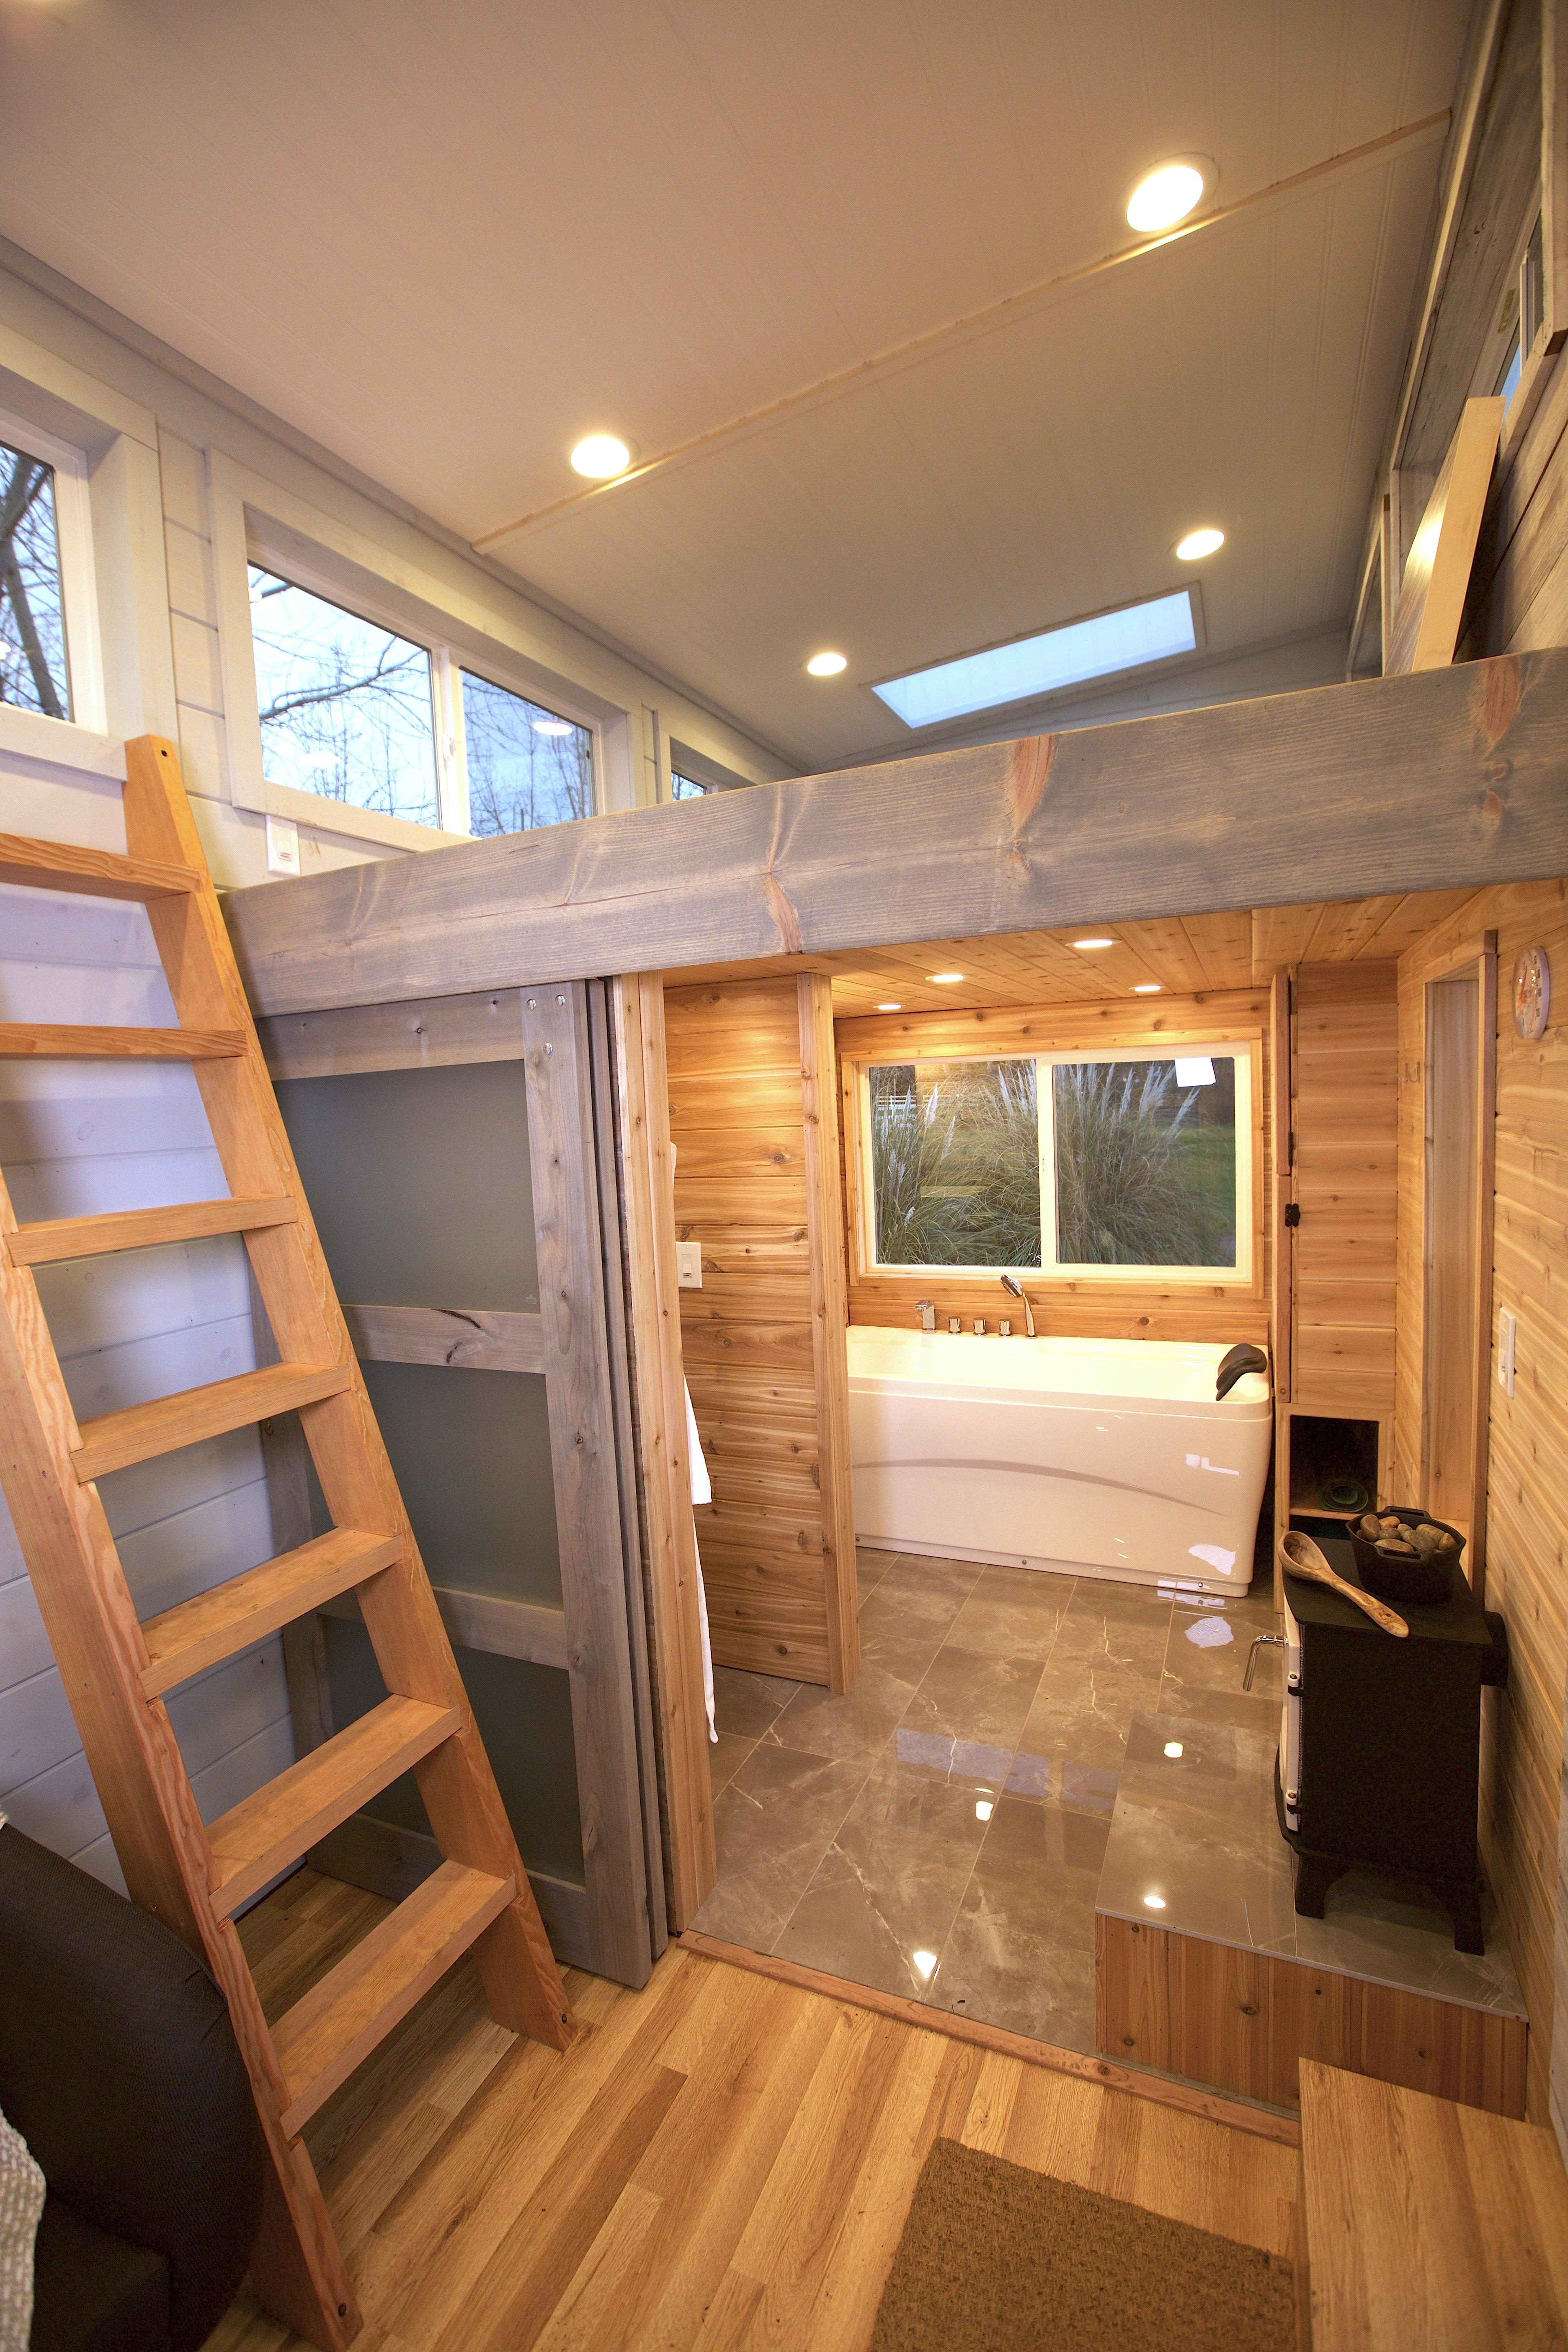 tiny house bathroom that converts into a sauna. nesting doors open